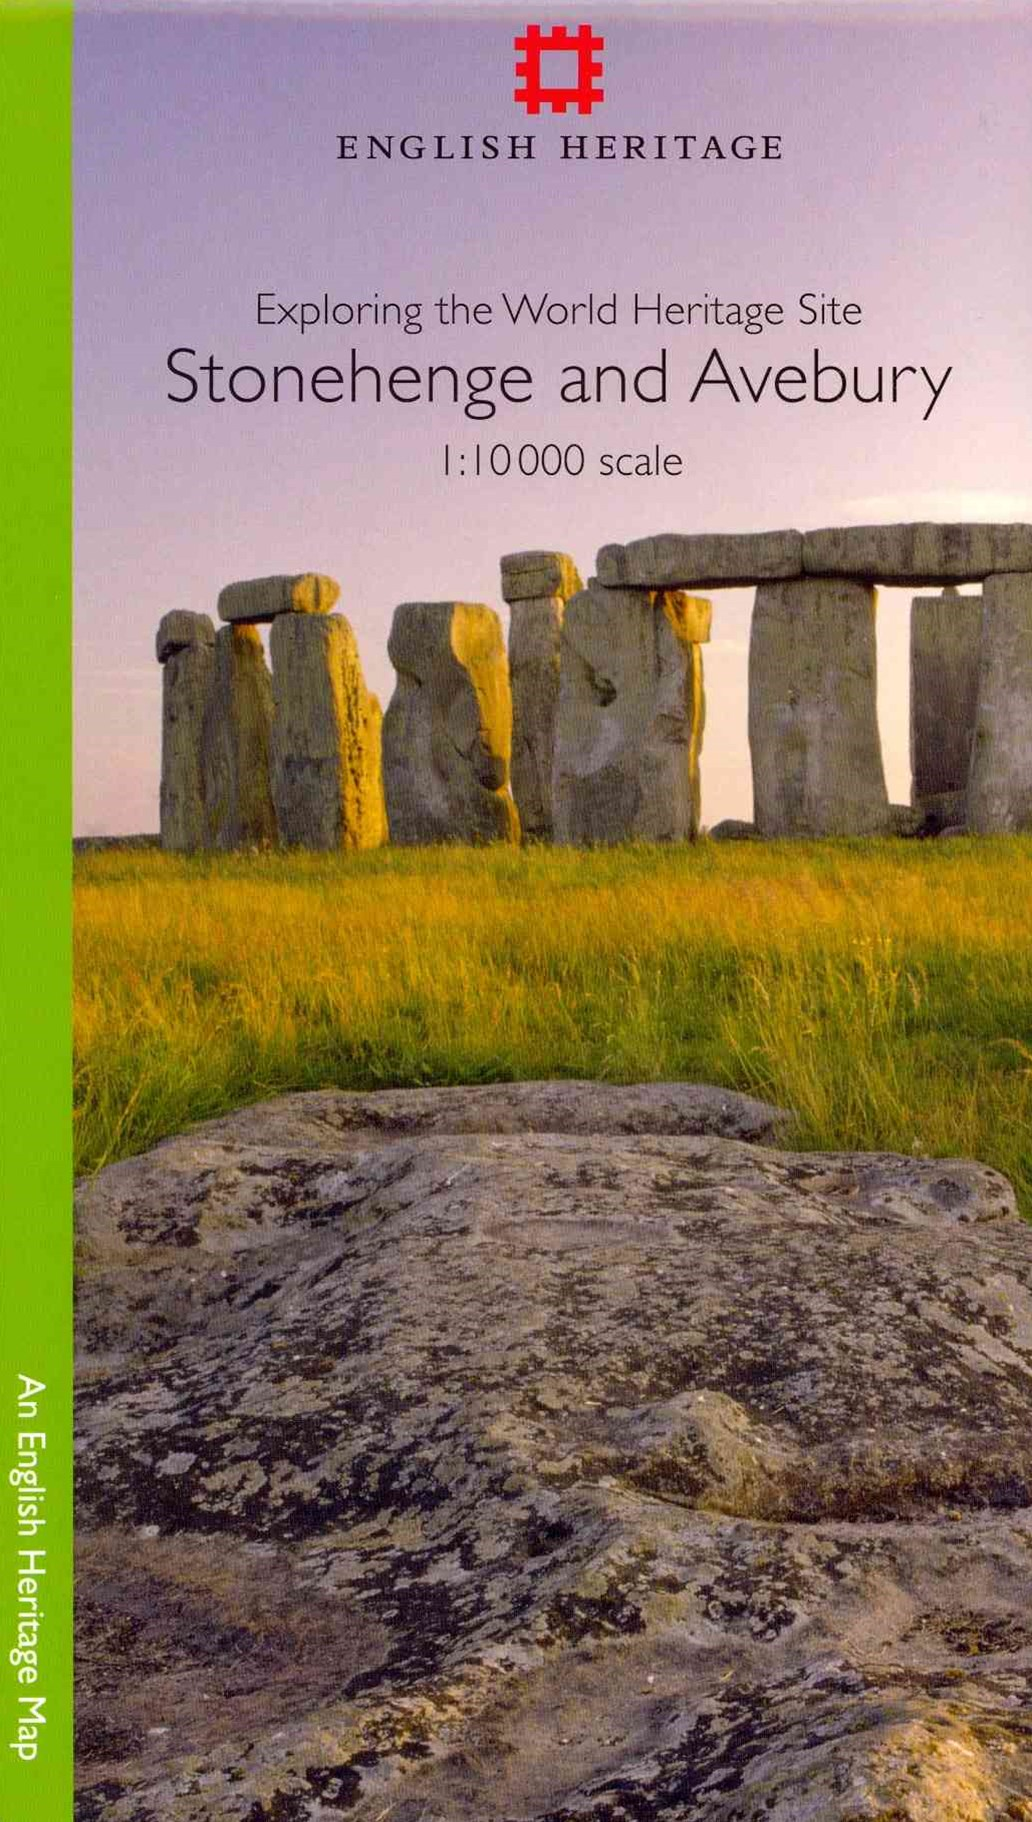 Stonehenge and Avebury